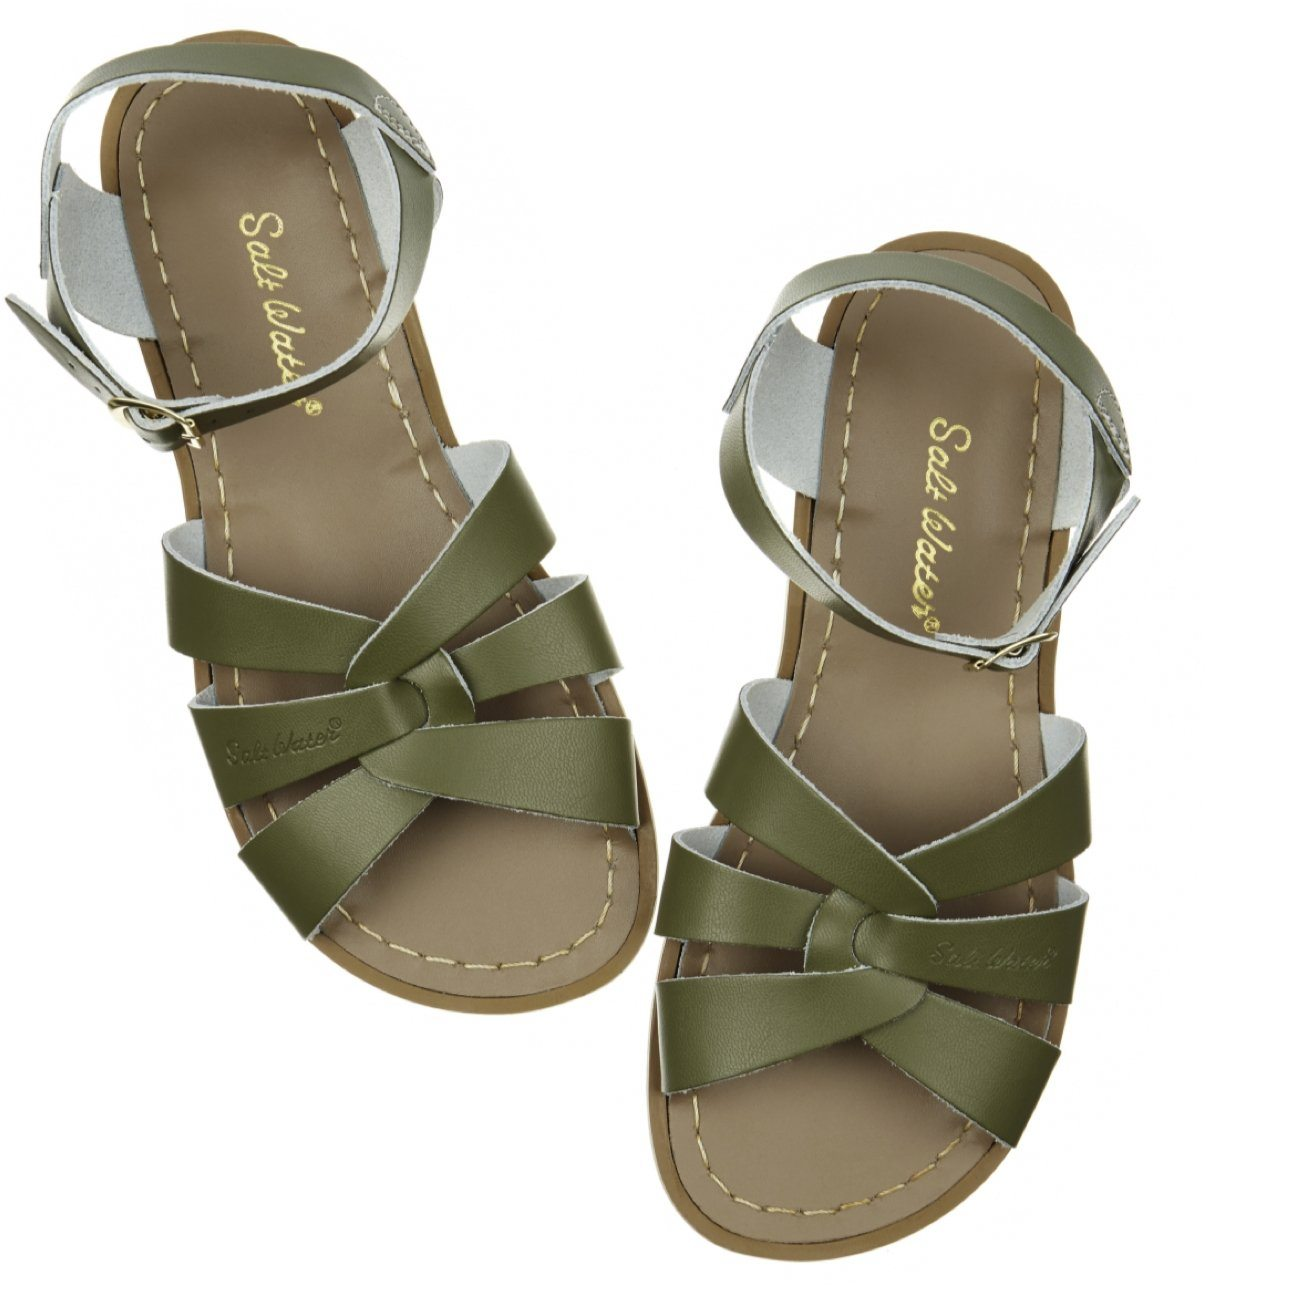 Salt Water Sandals, Original, Youth, Olive Sandals Salt Water Sandals Olive Y1